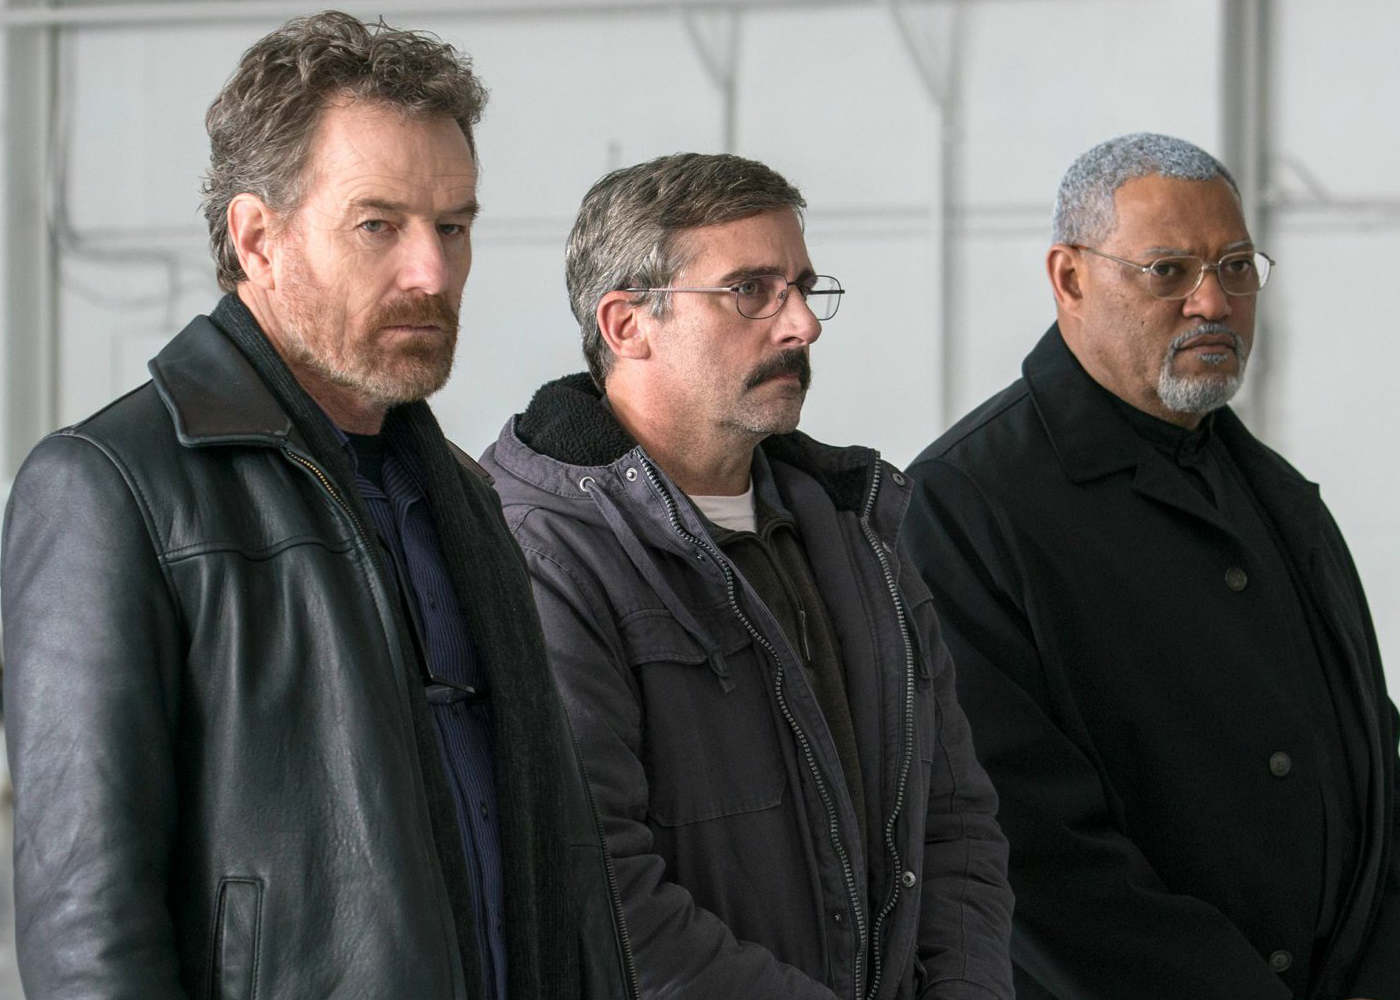 LFF 2017: 'Last Flag Flying' is a Bittersweet Coming-of-Old-Age Delight